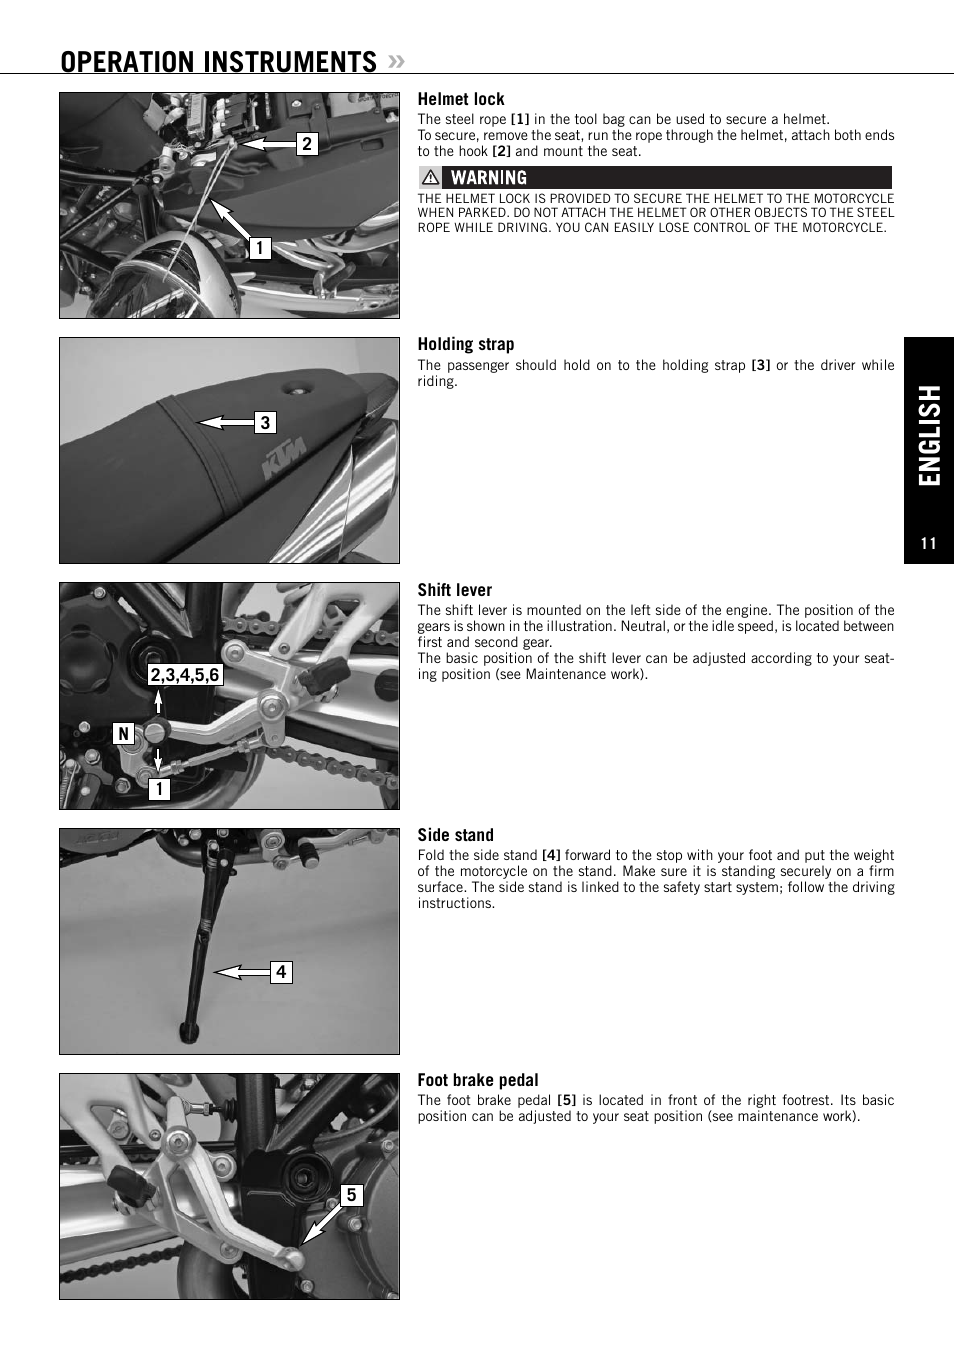 English, Operation instruments | KTM Super Duke 990s User Manual